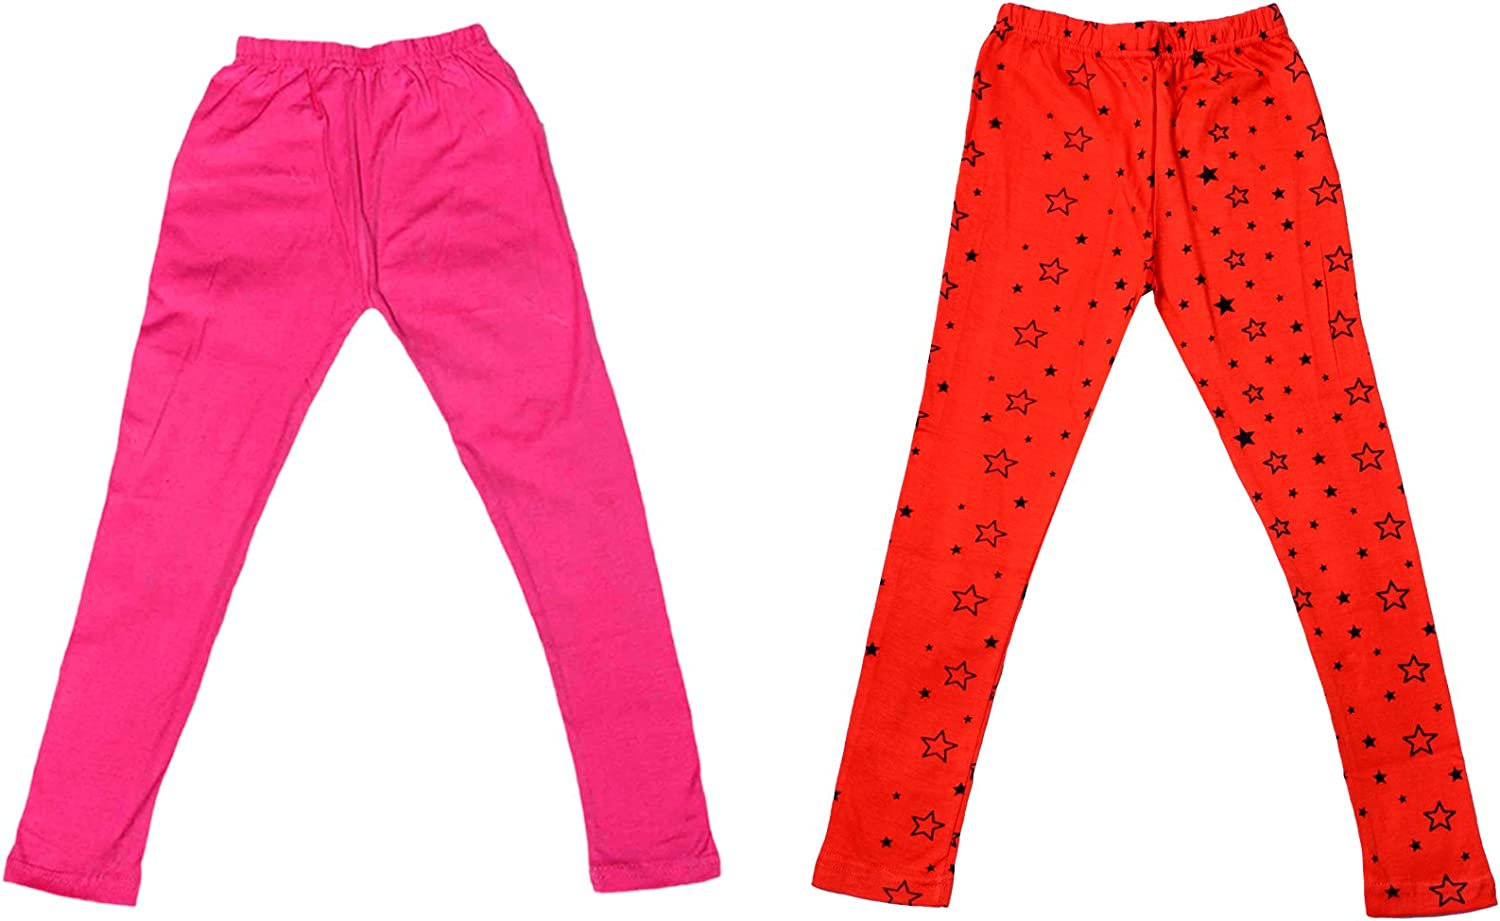 Pack of 3 Indistar 2 Solid and 1 Printed Ankle Length Legging For Girls